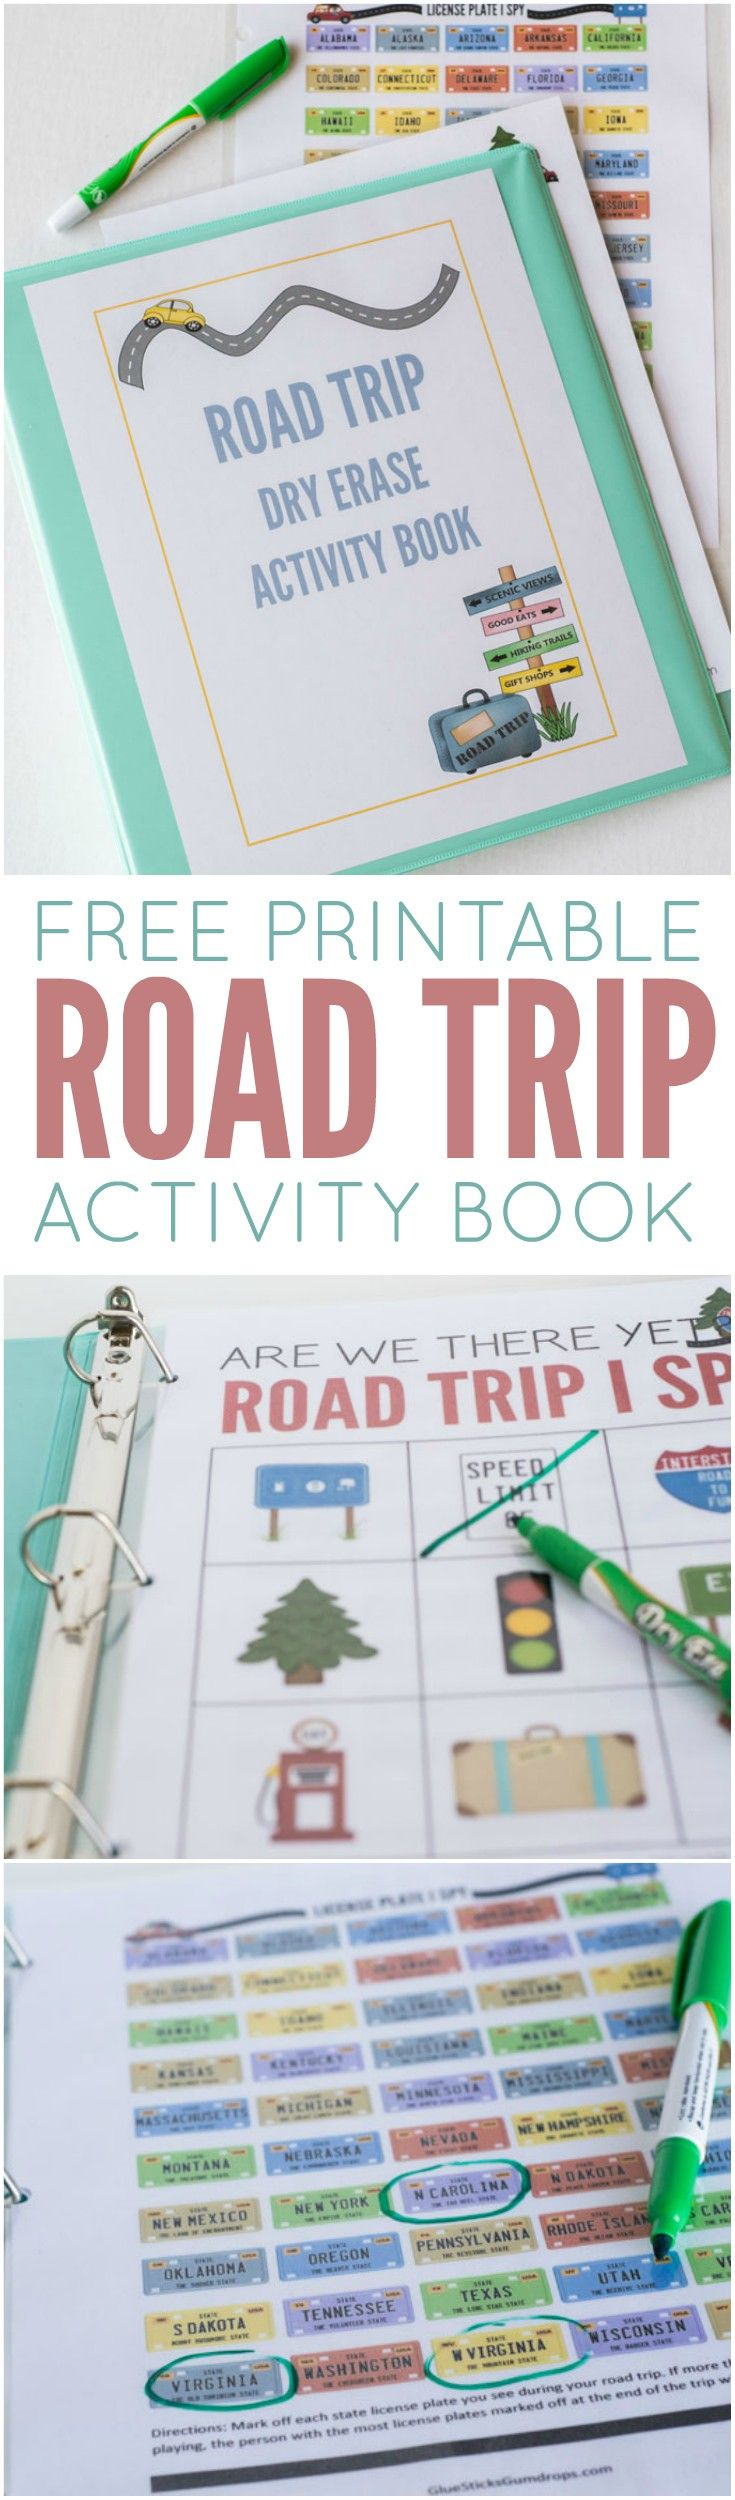 This dry erase road trip activity book is the perfect way to keep kids entertained during a long car ride!   #ad #FRAMFreshBreeze